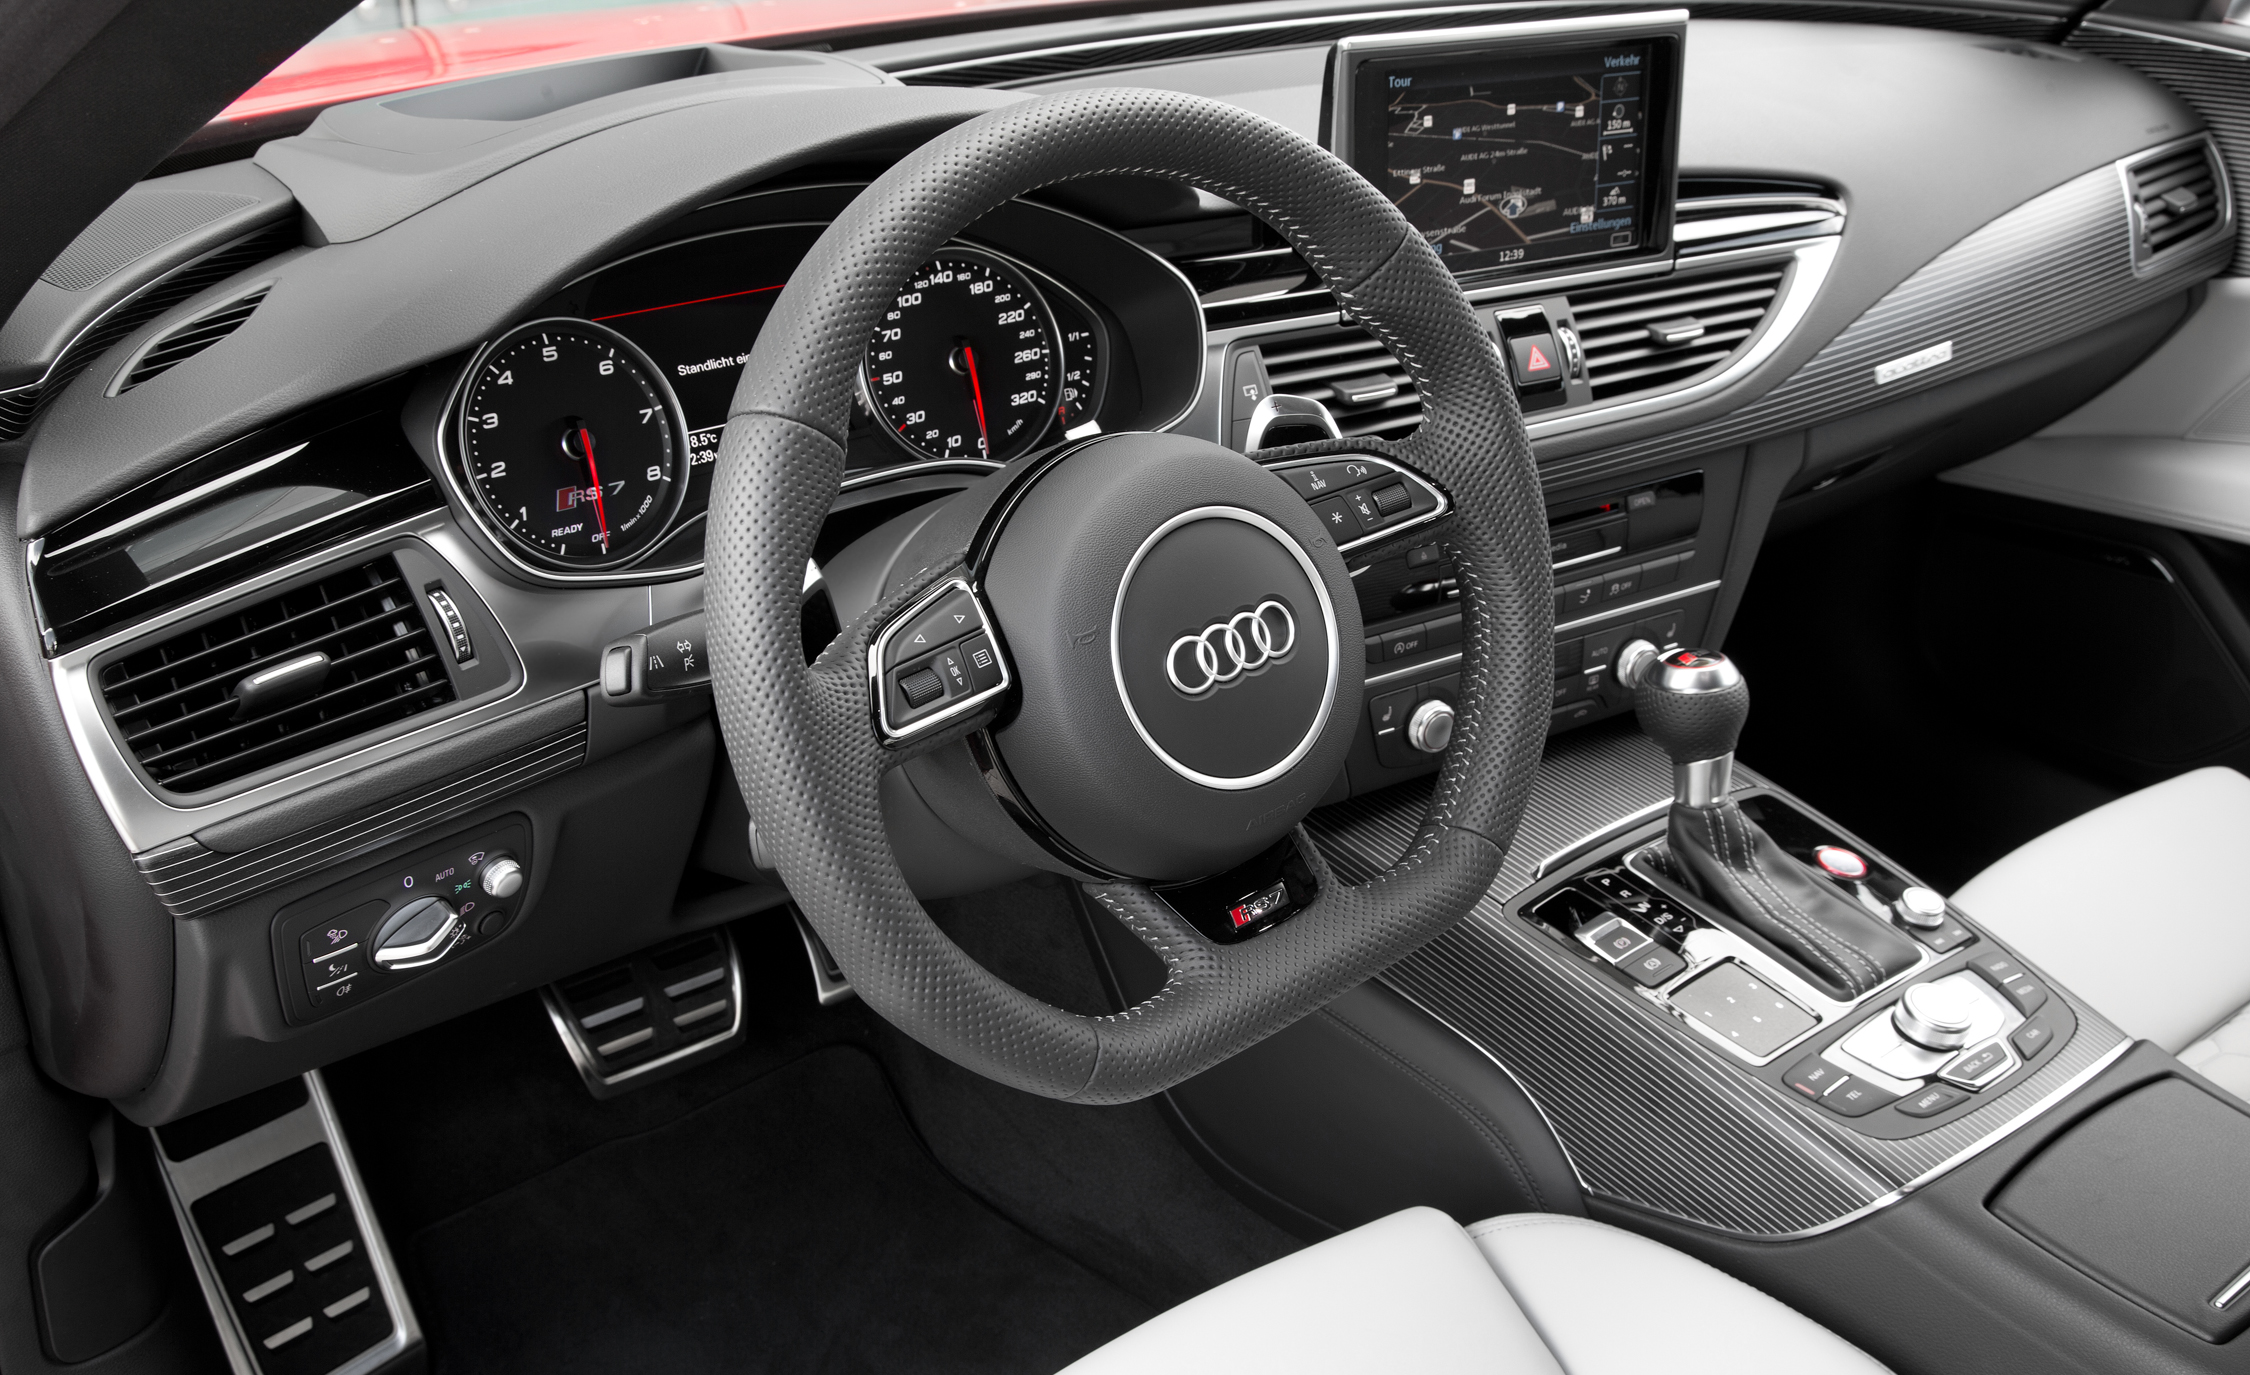 2016 Audi RS7 Interior (Photo 18 of 20)